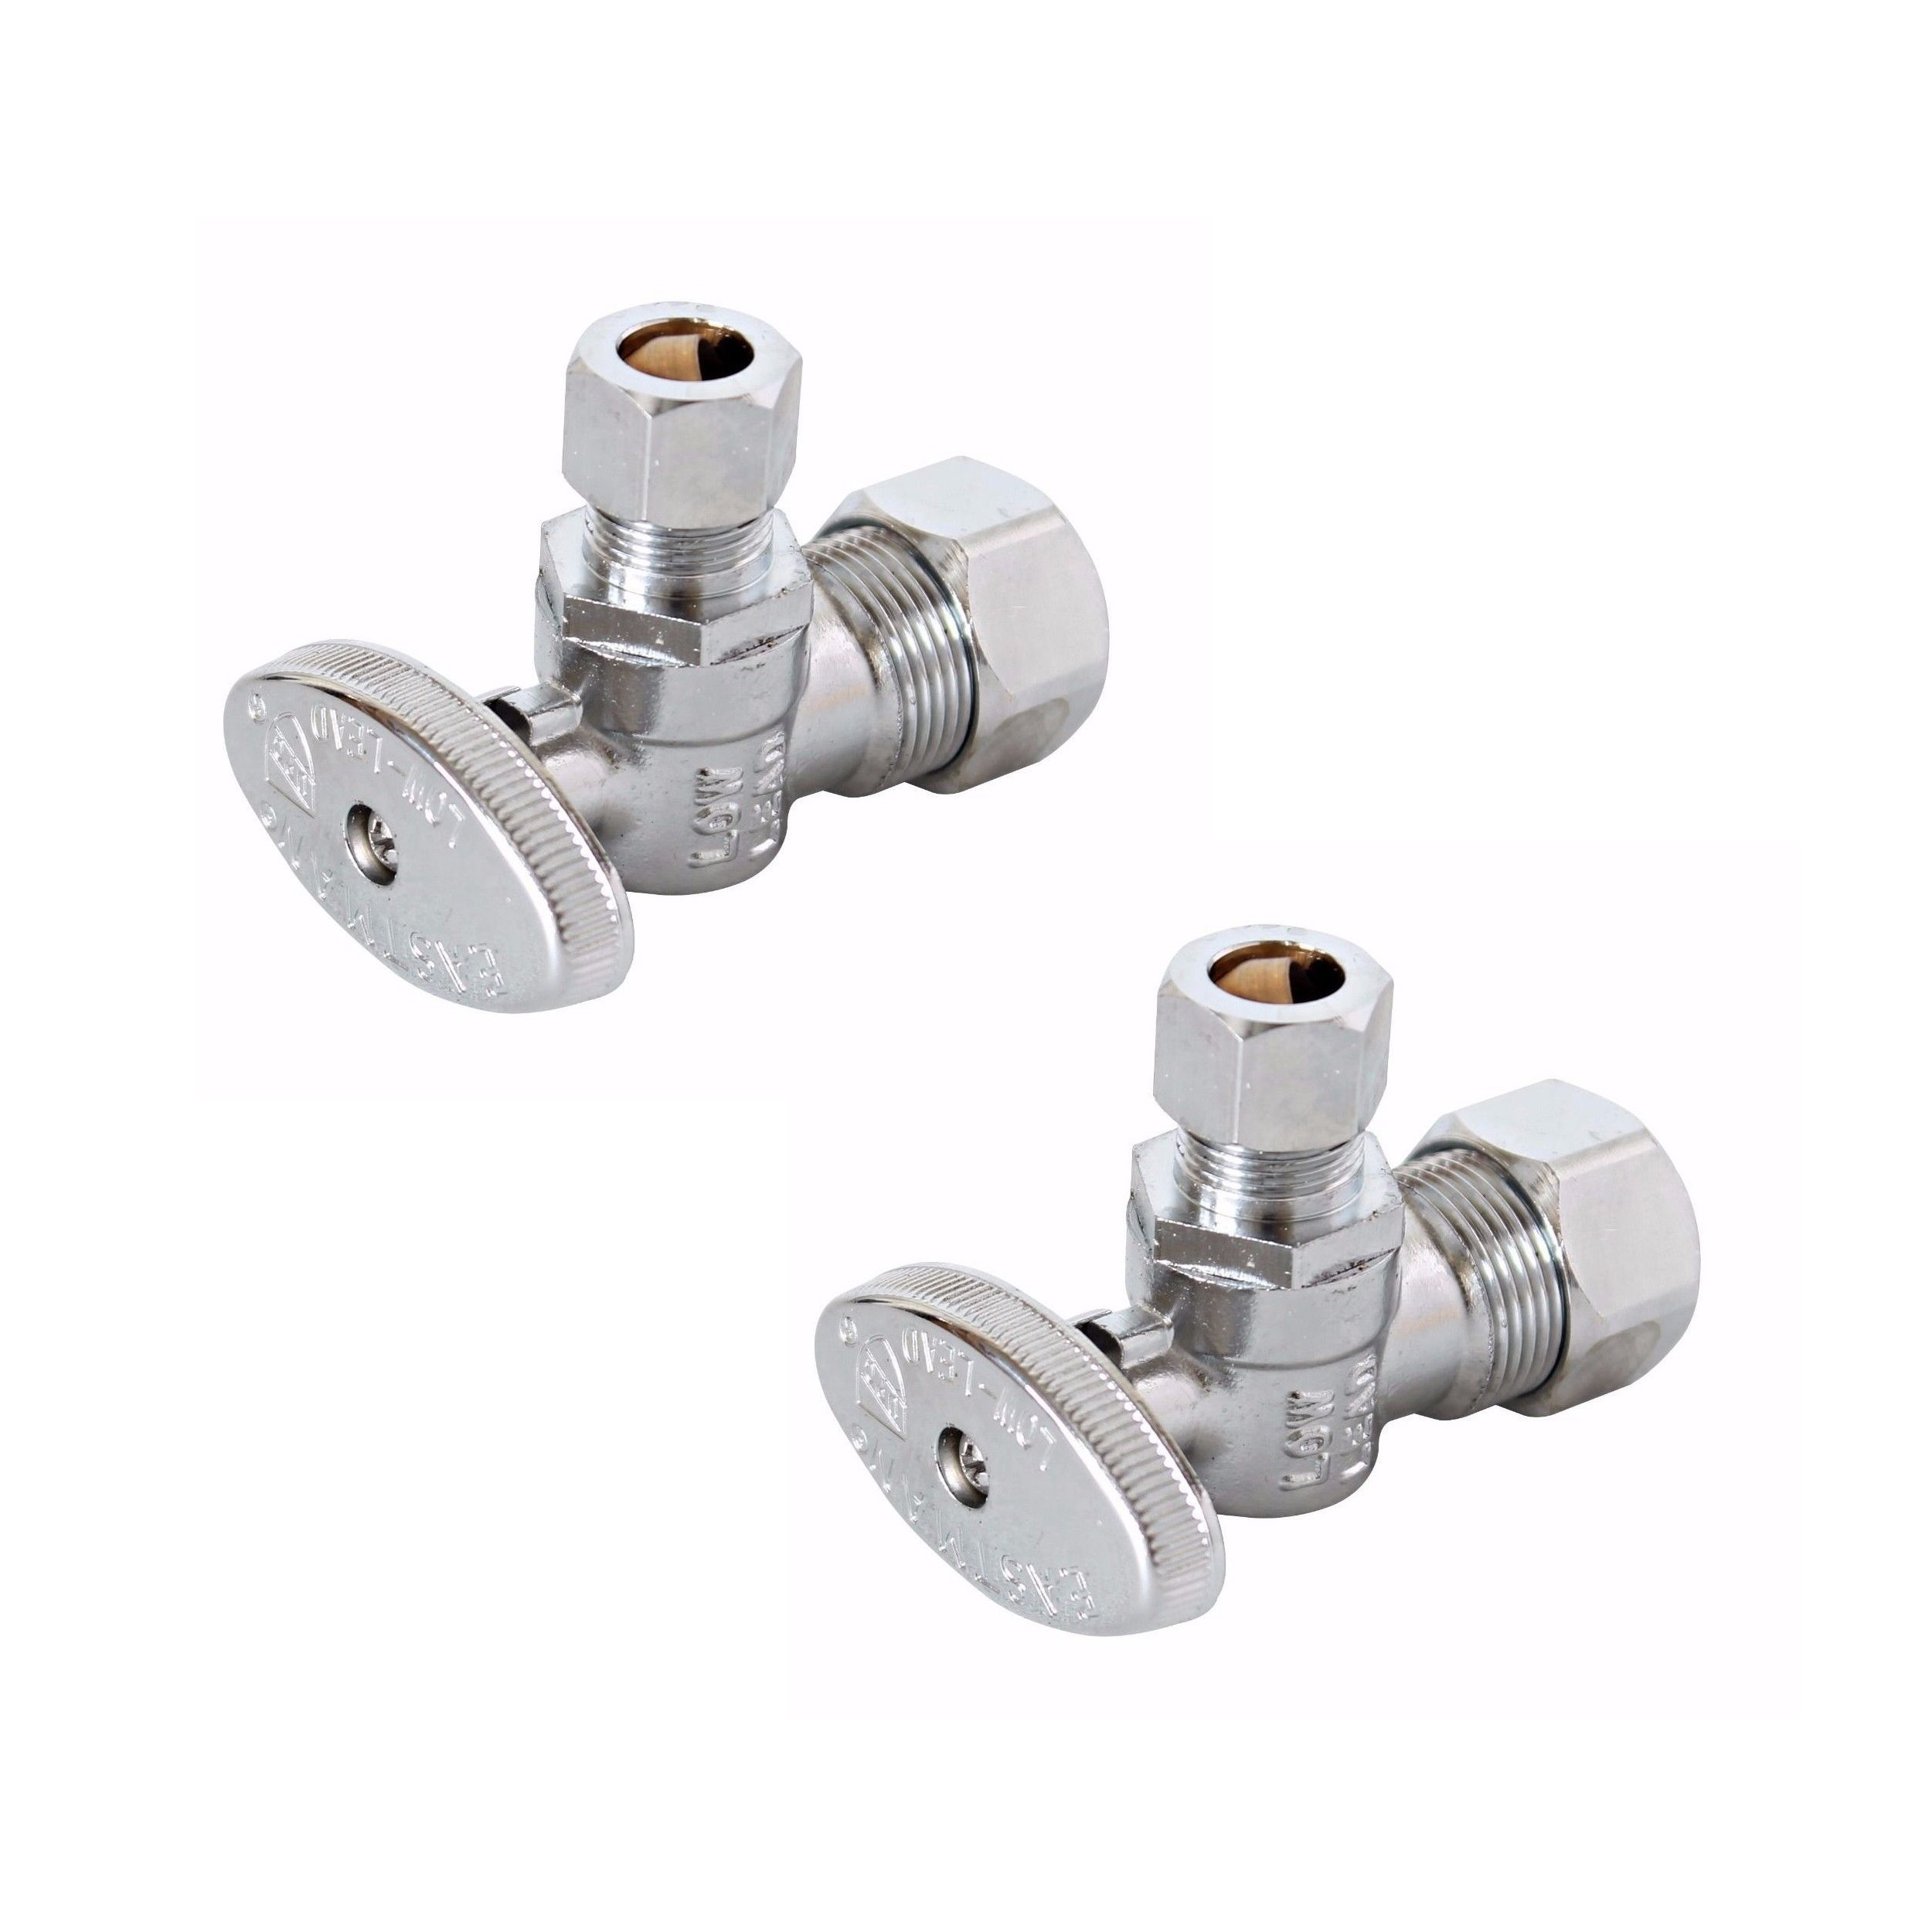 Eastman 10738LF Angle Stop Valve 1/4-Turn, 5/8'' Compression (1/2'' Nom) x 3/8'' OD Compression, Lead Free (2-Pack)